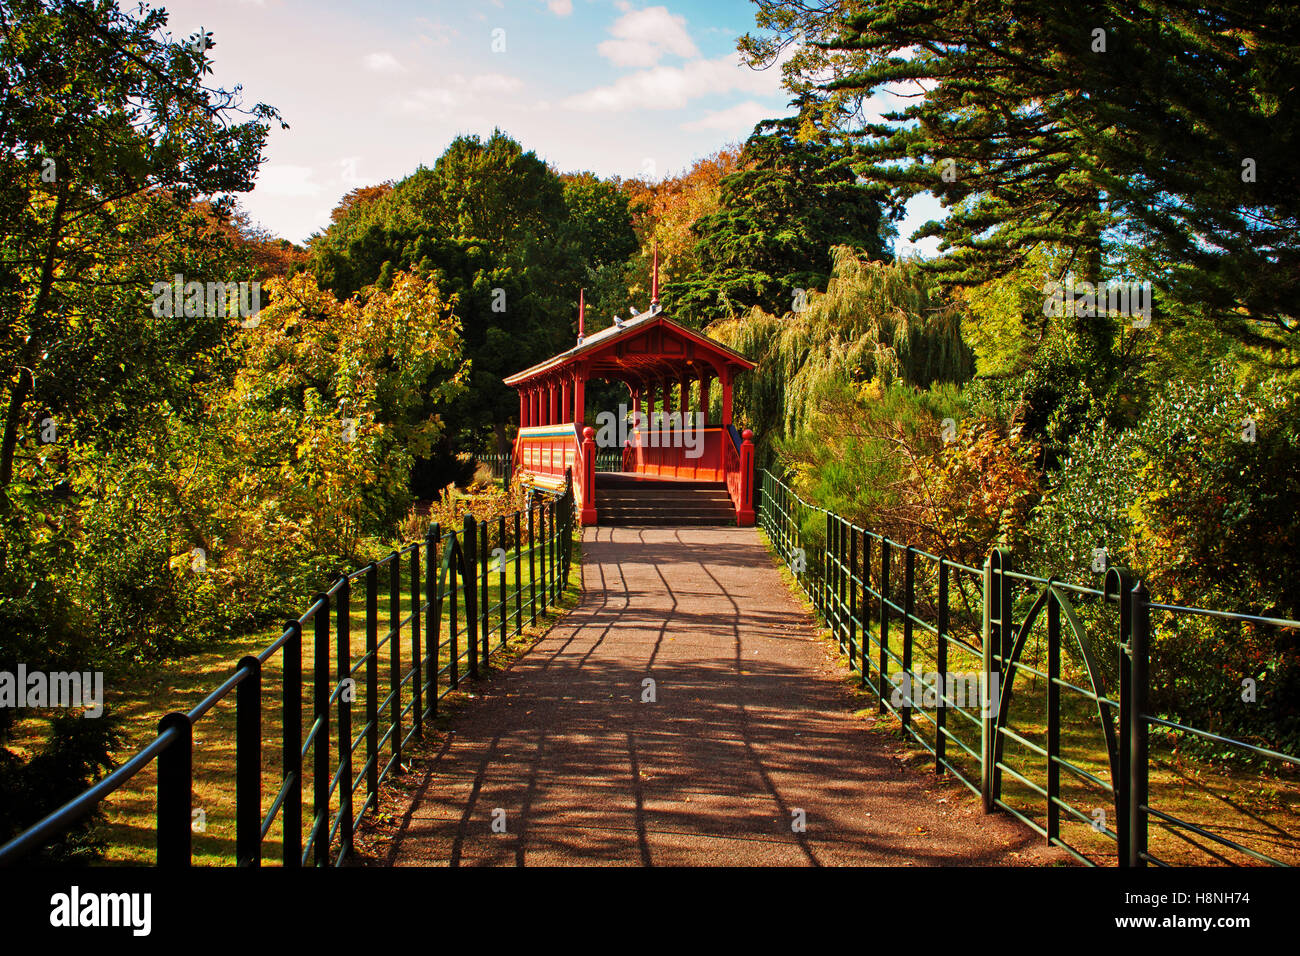 The path to the Swiss Bridge, Birkenhead Park - Stock Image